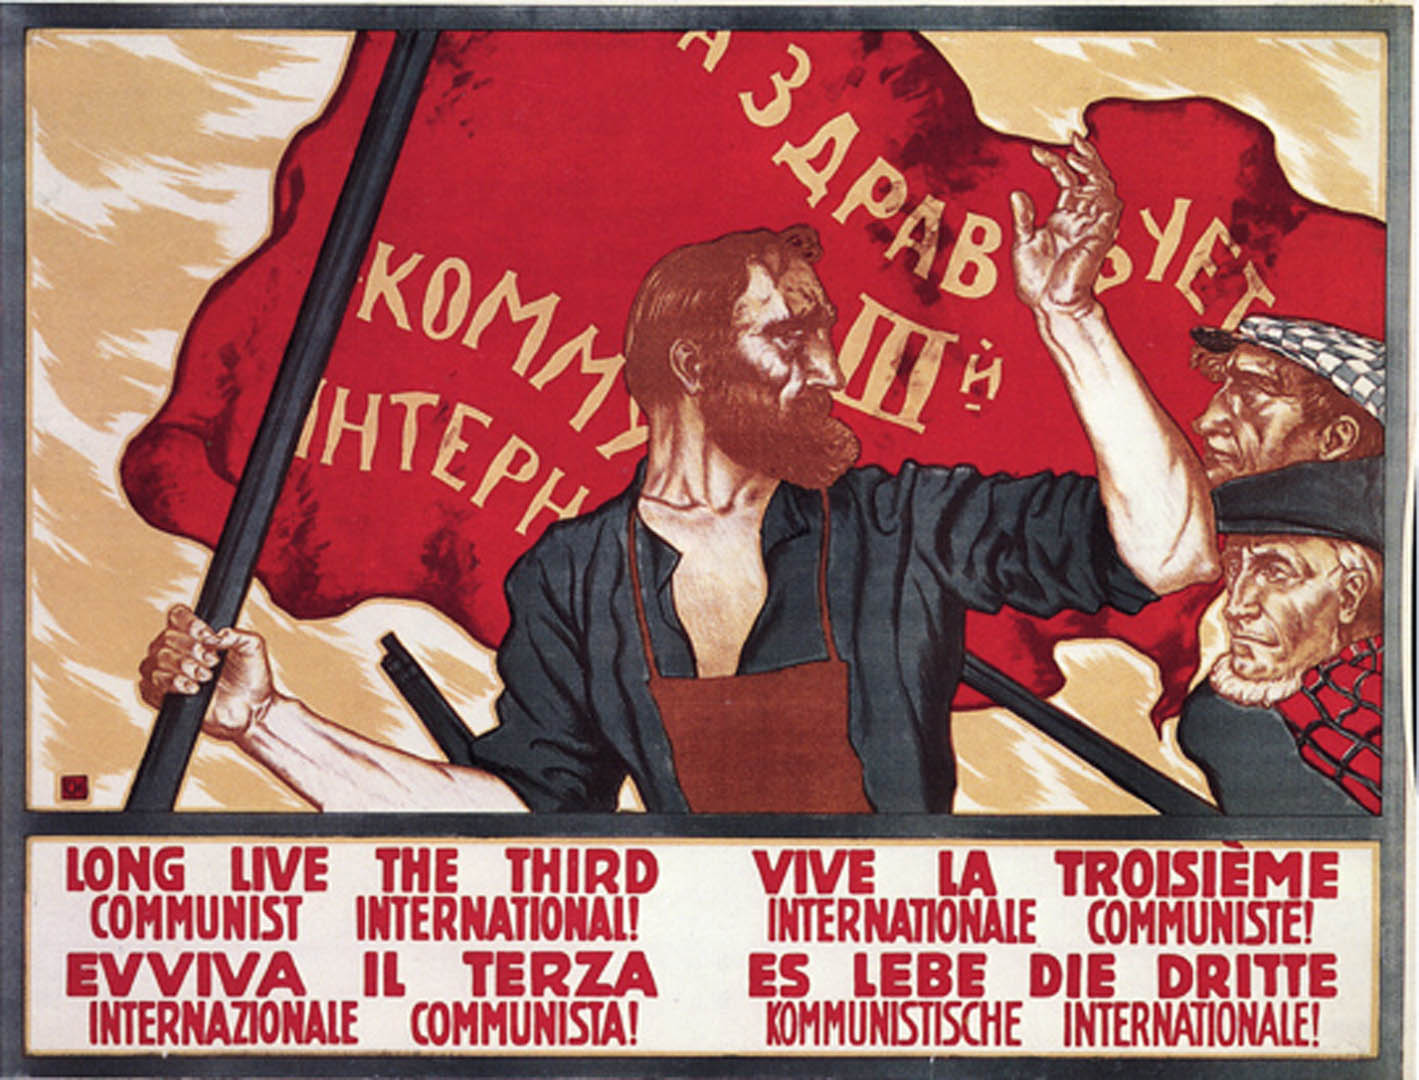 third international communist meeting